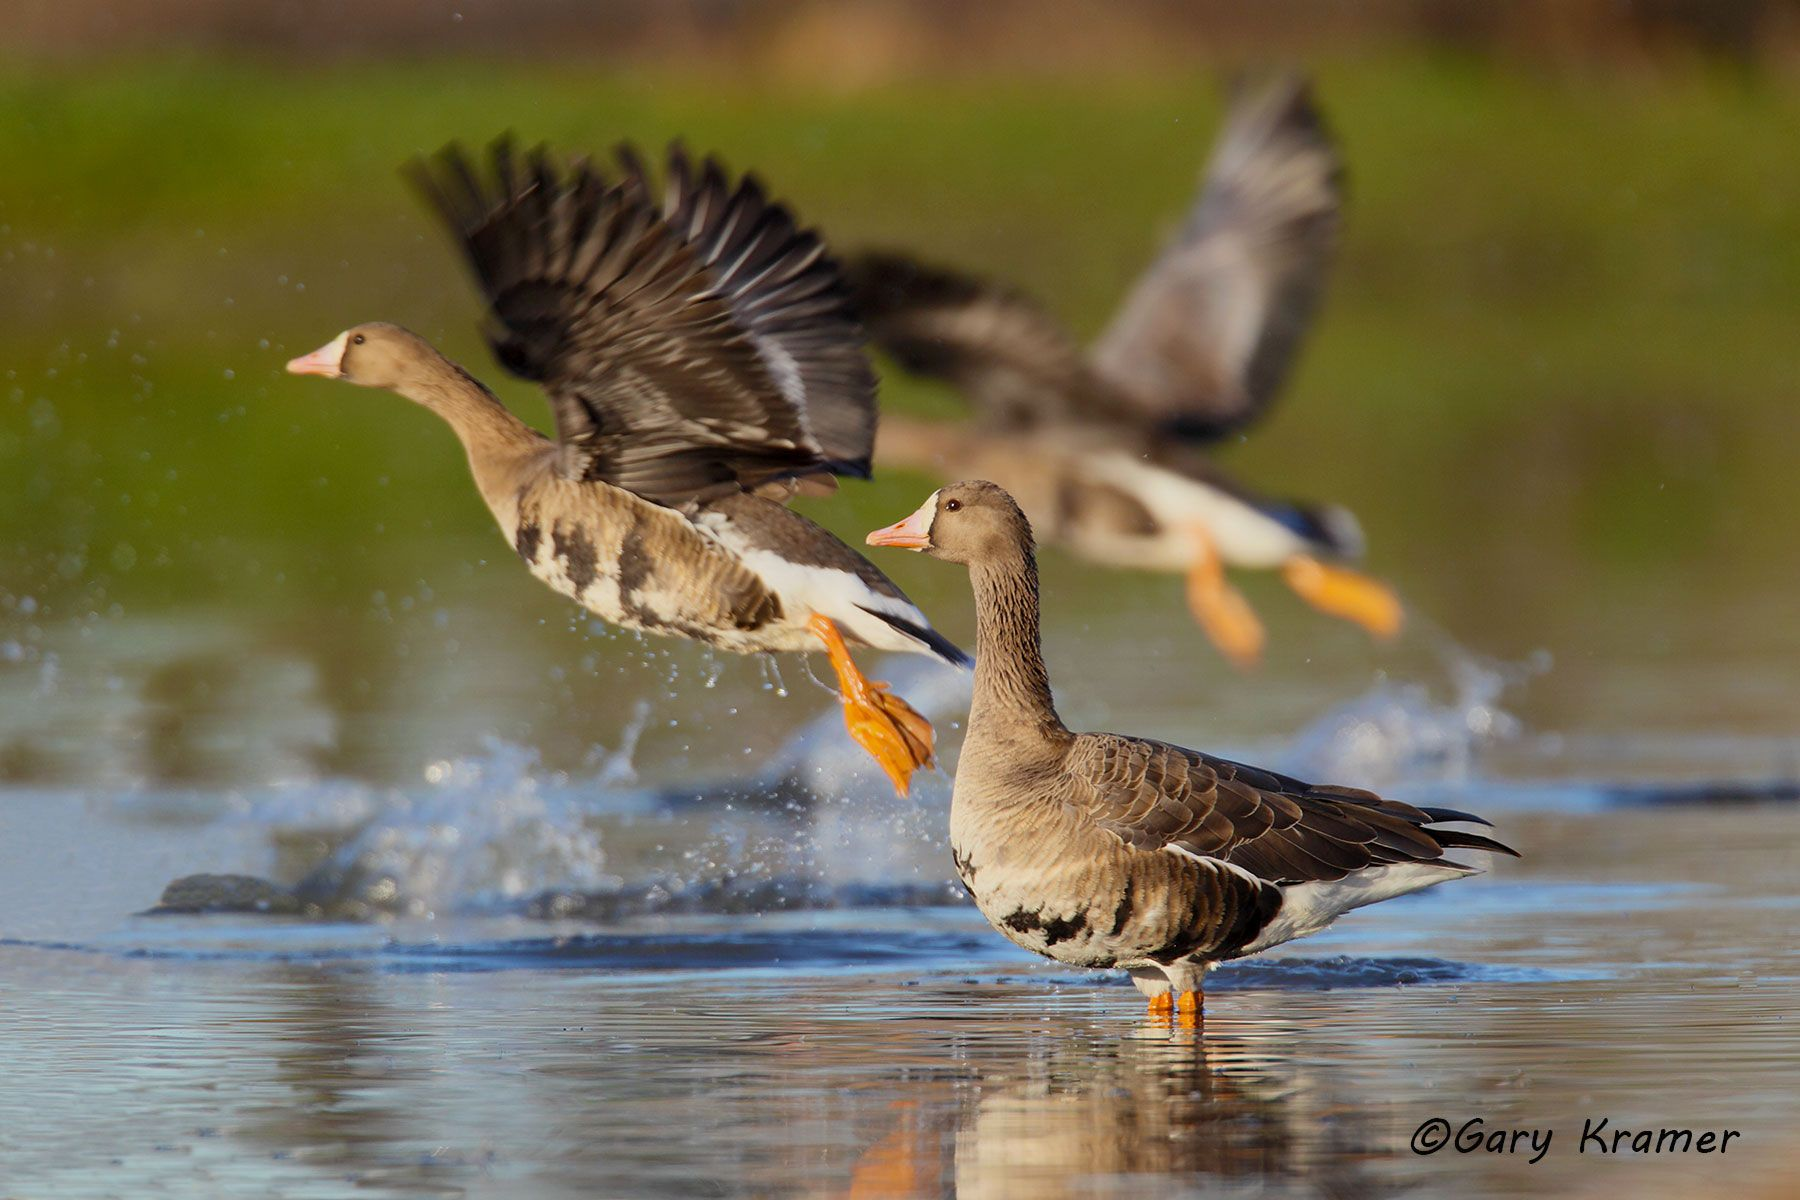 White-fronted Goose (Anser albifrons) - NBWWf#925d